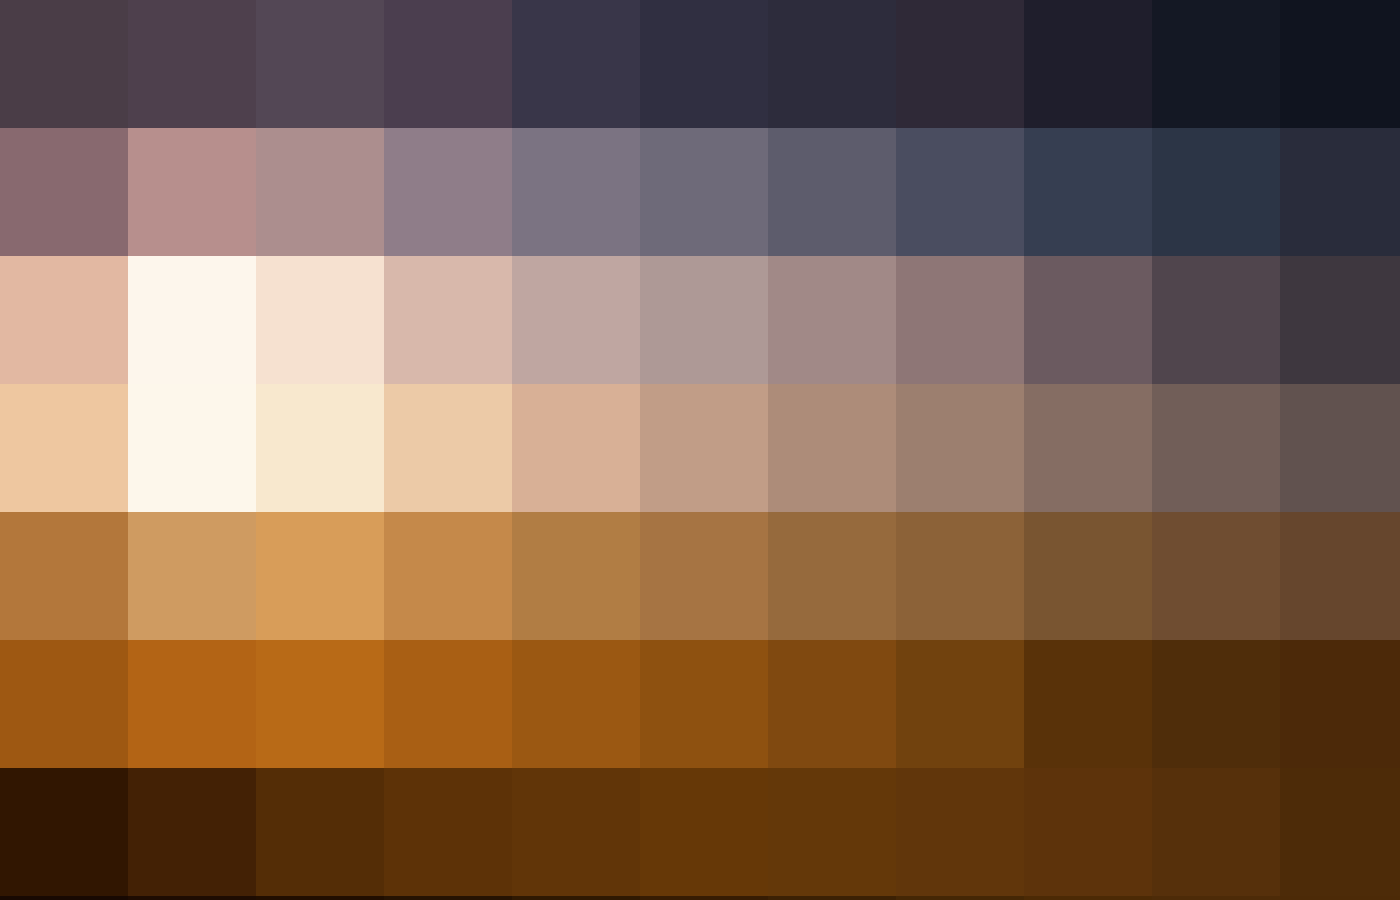 I Started Doing This To Try And Deduce The Color Spectrum Of Each Picture Use Block As A Swatch My Thinking Was That By Making Bigger